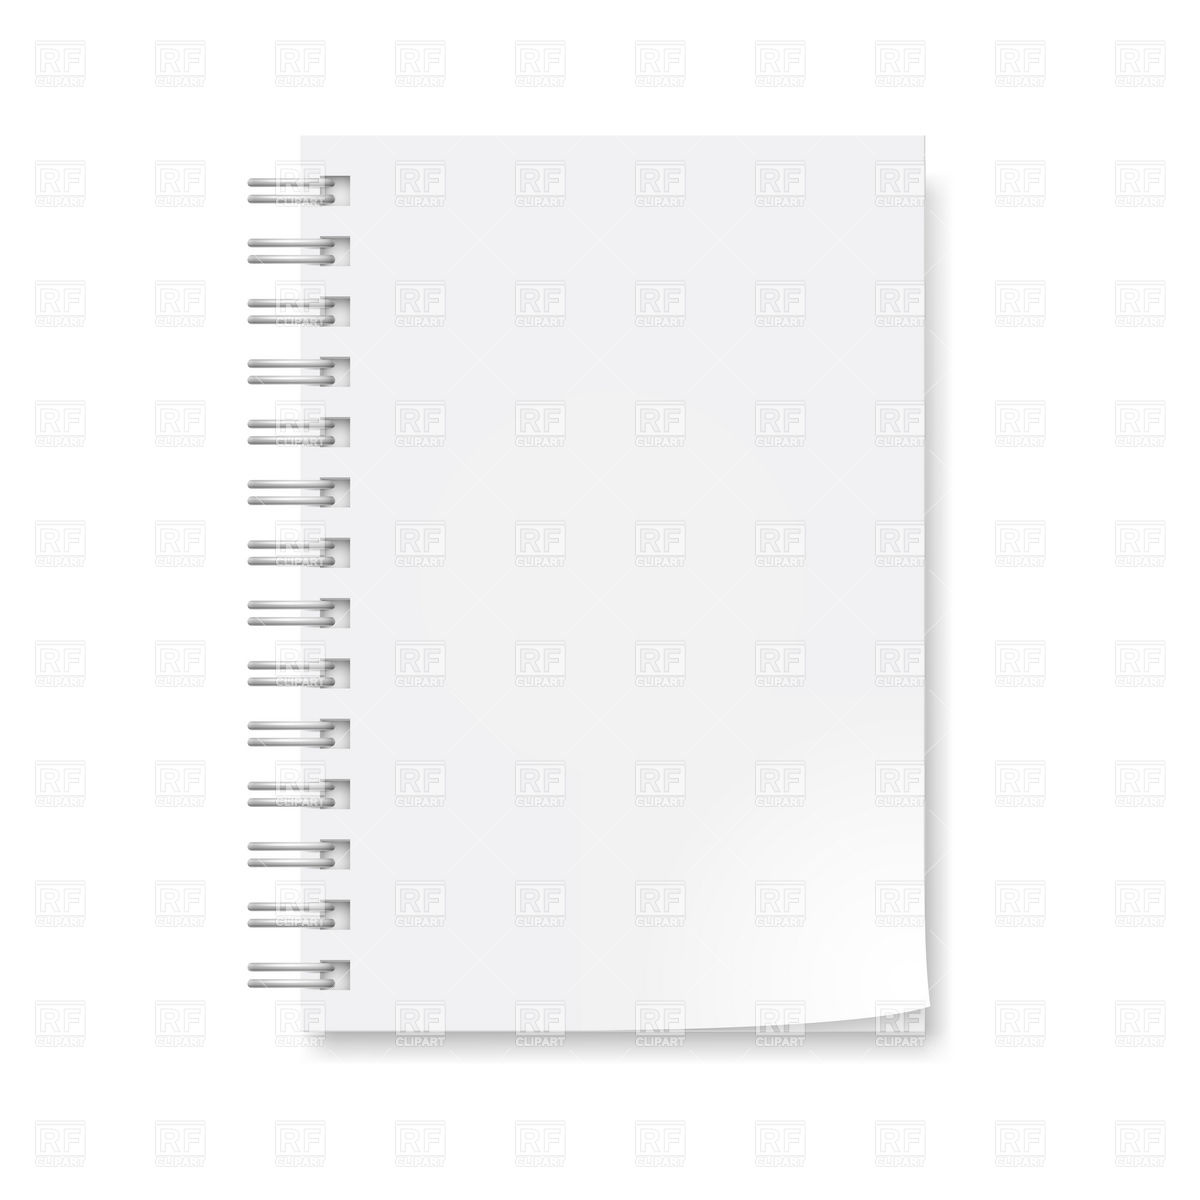 Notepad With Blank Sheets Download Royalty Free Vector Clipart  Eps